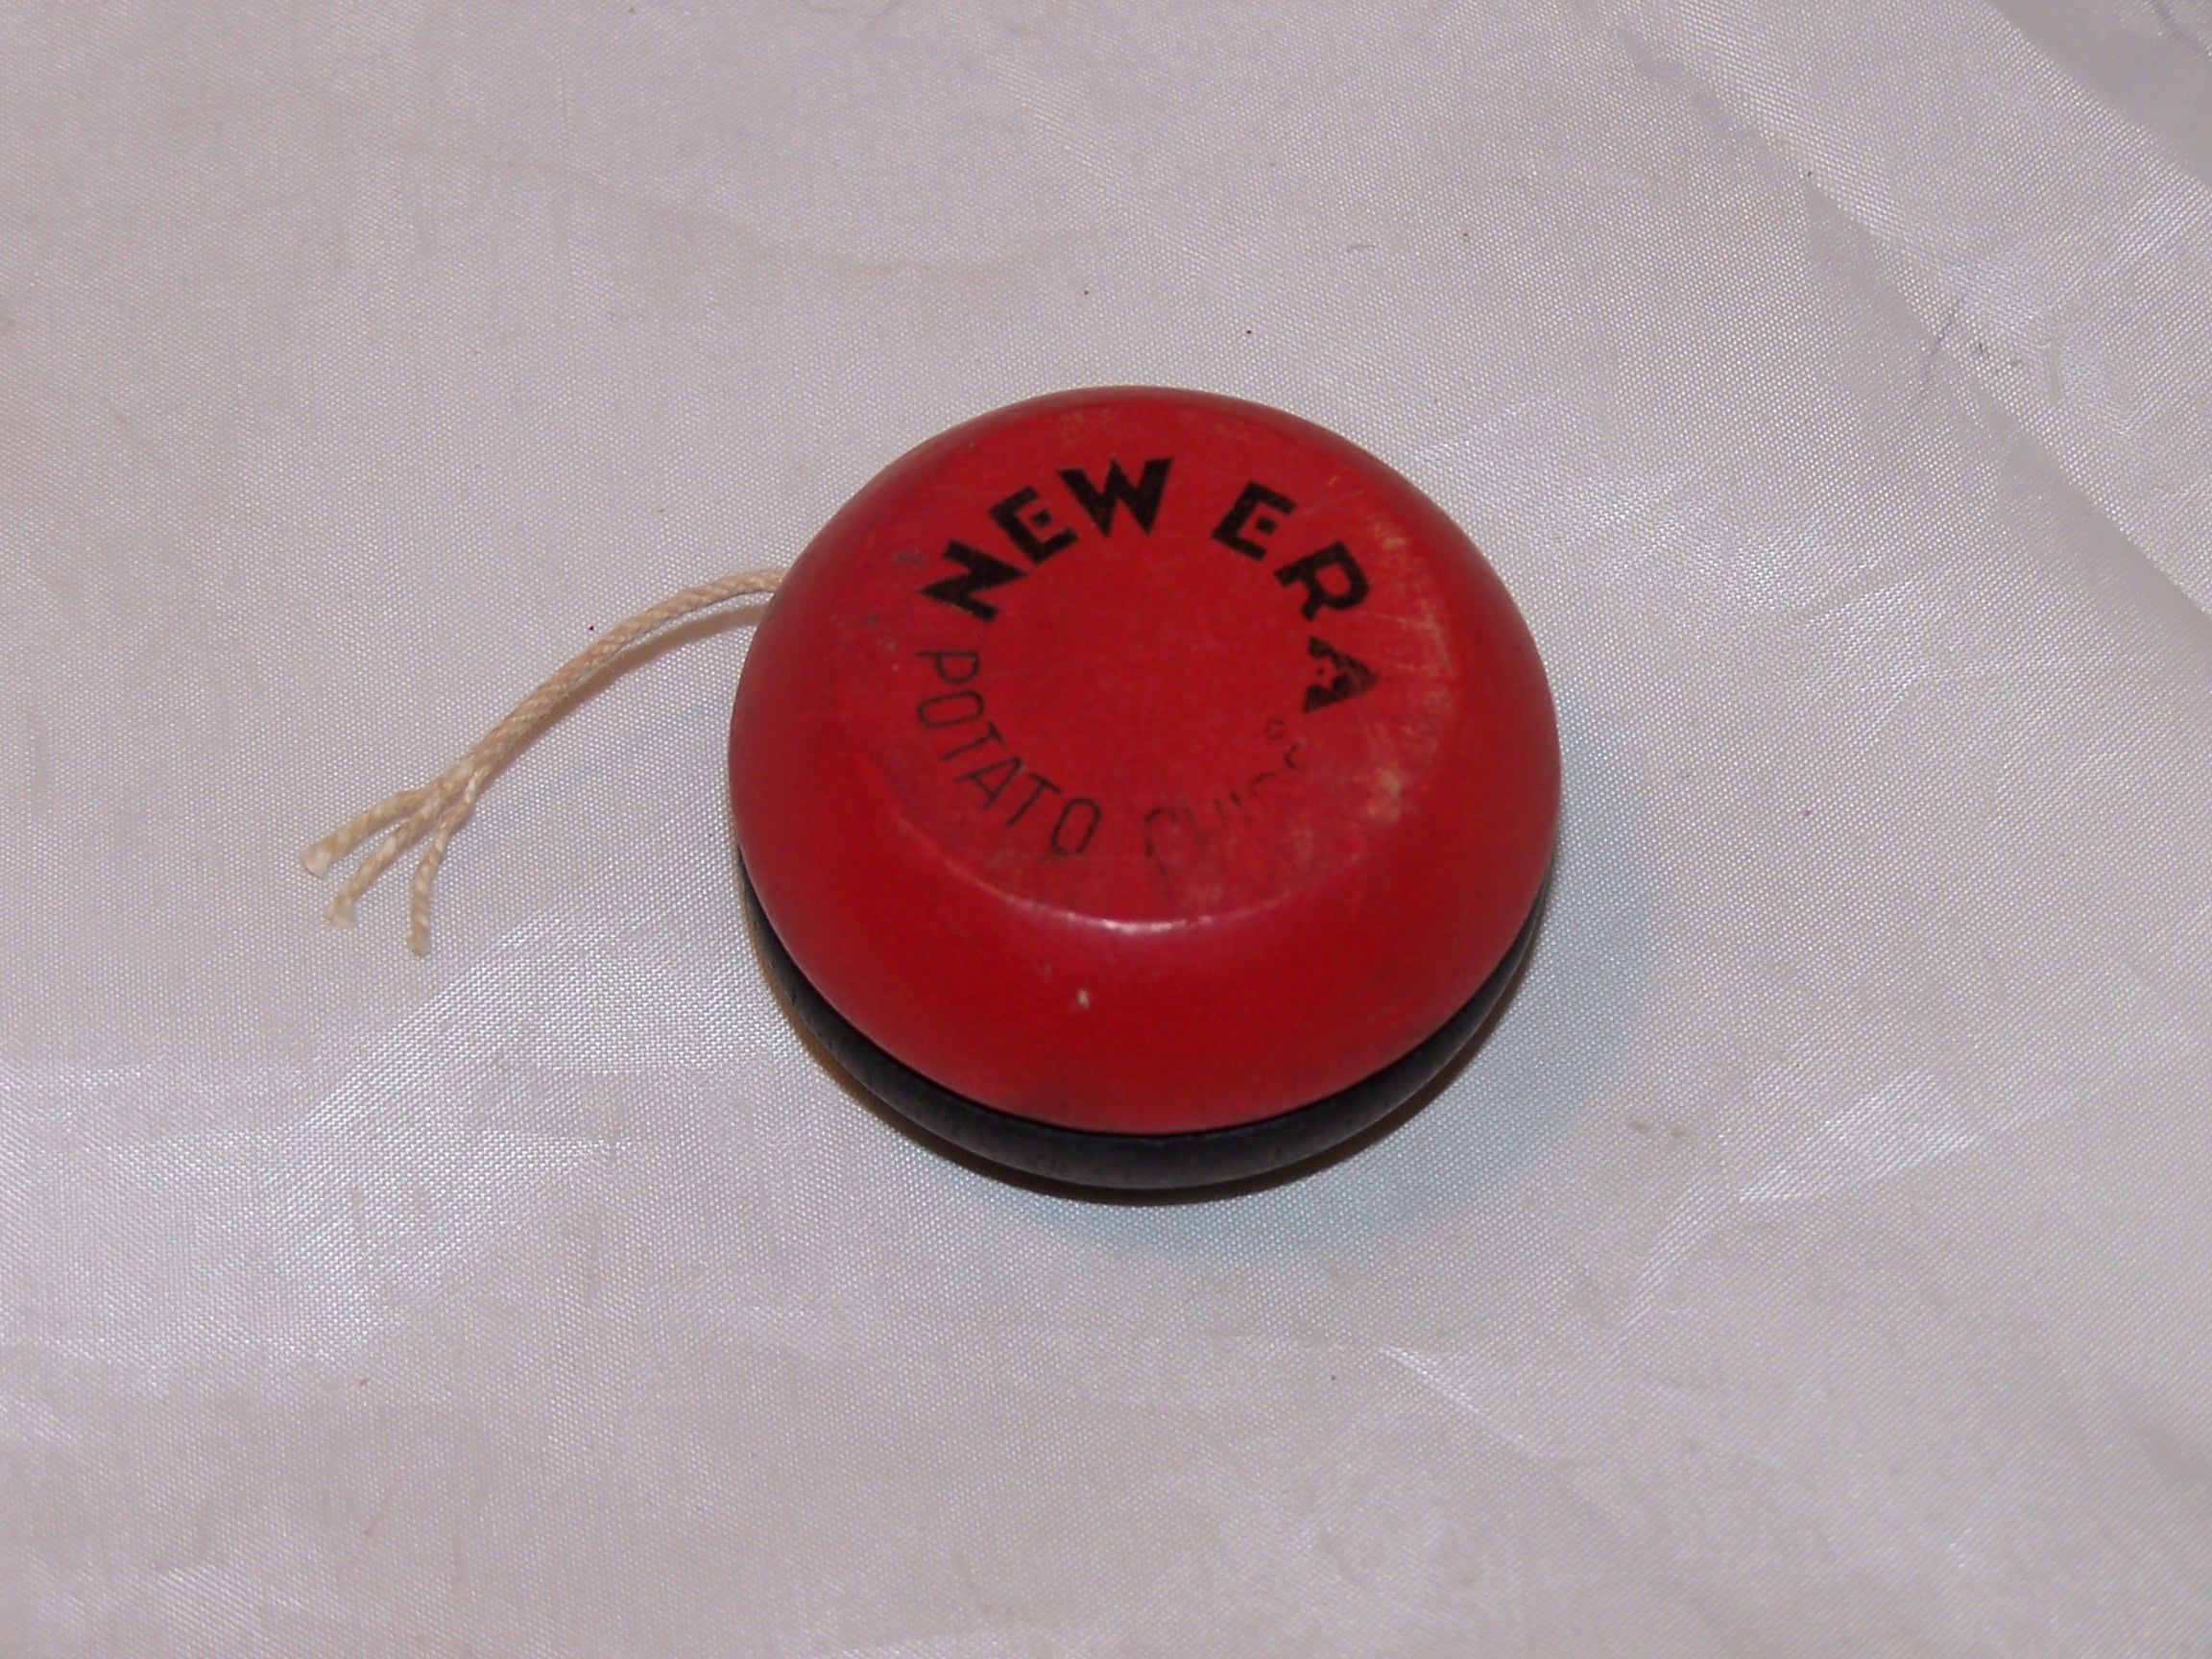 New Era Potato Chip Yoyo Yo-Yo, Red, Black, Wood, Duncan